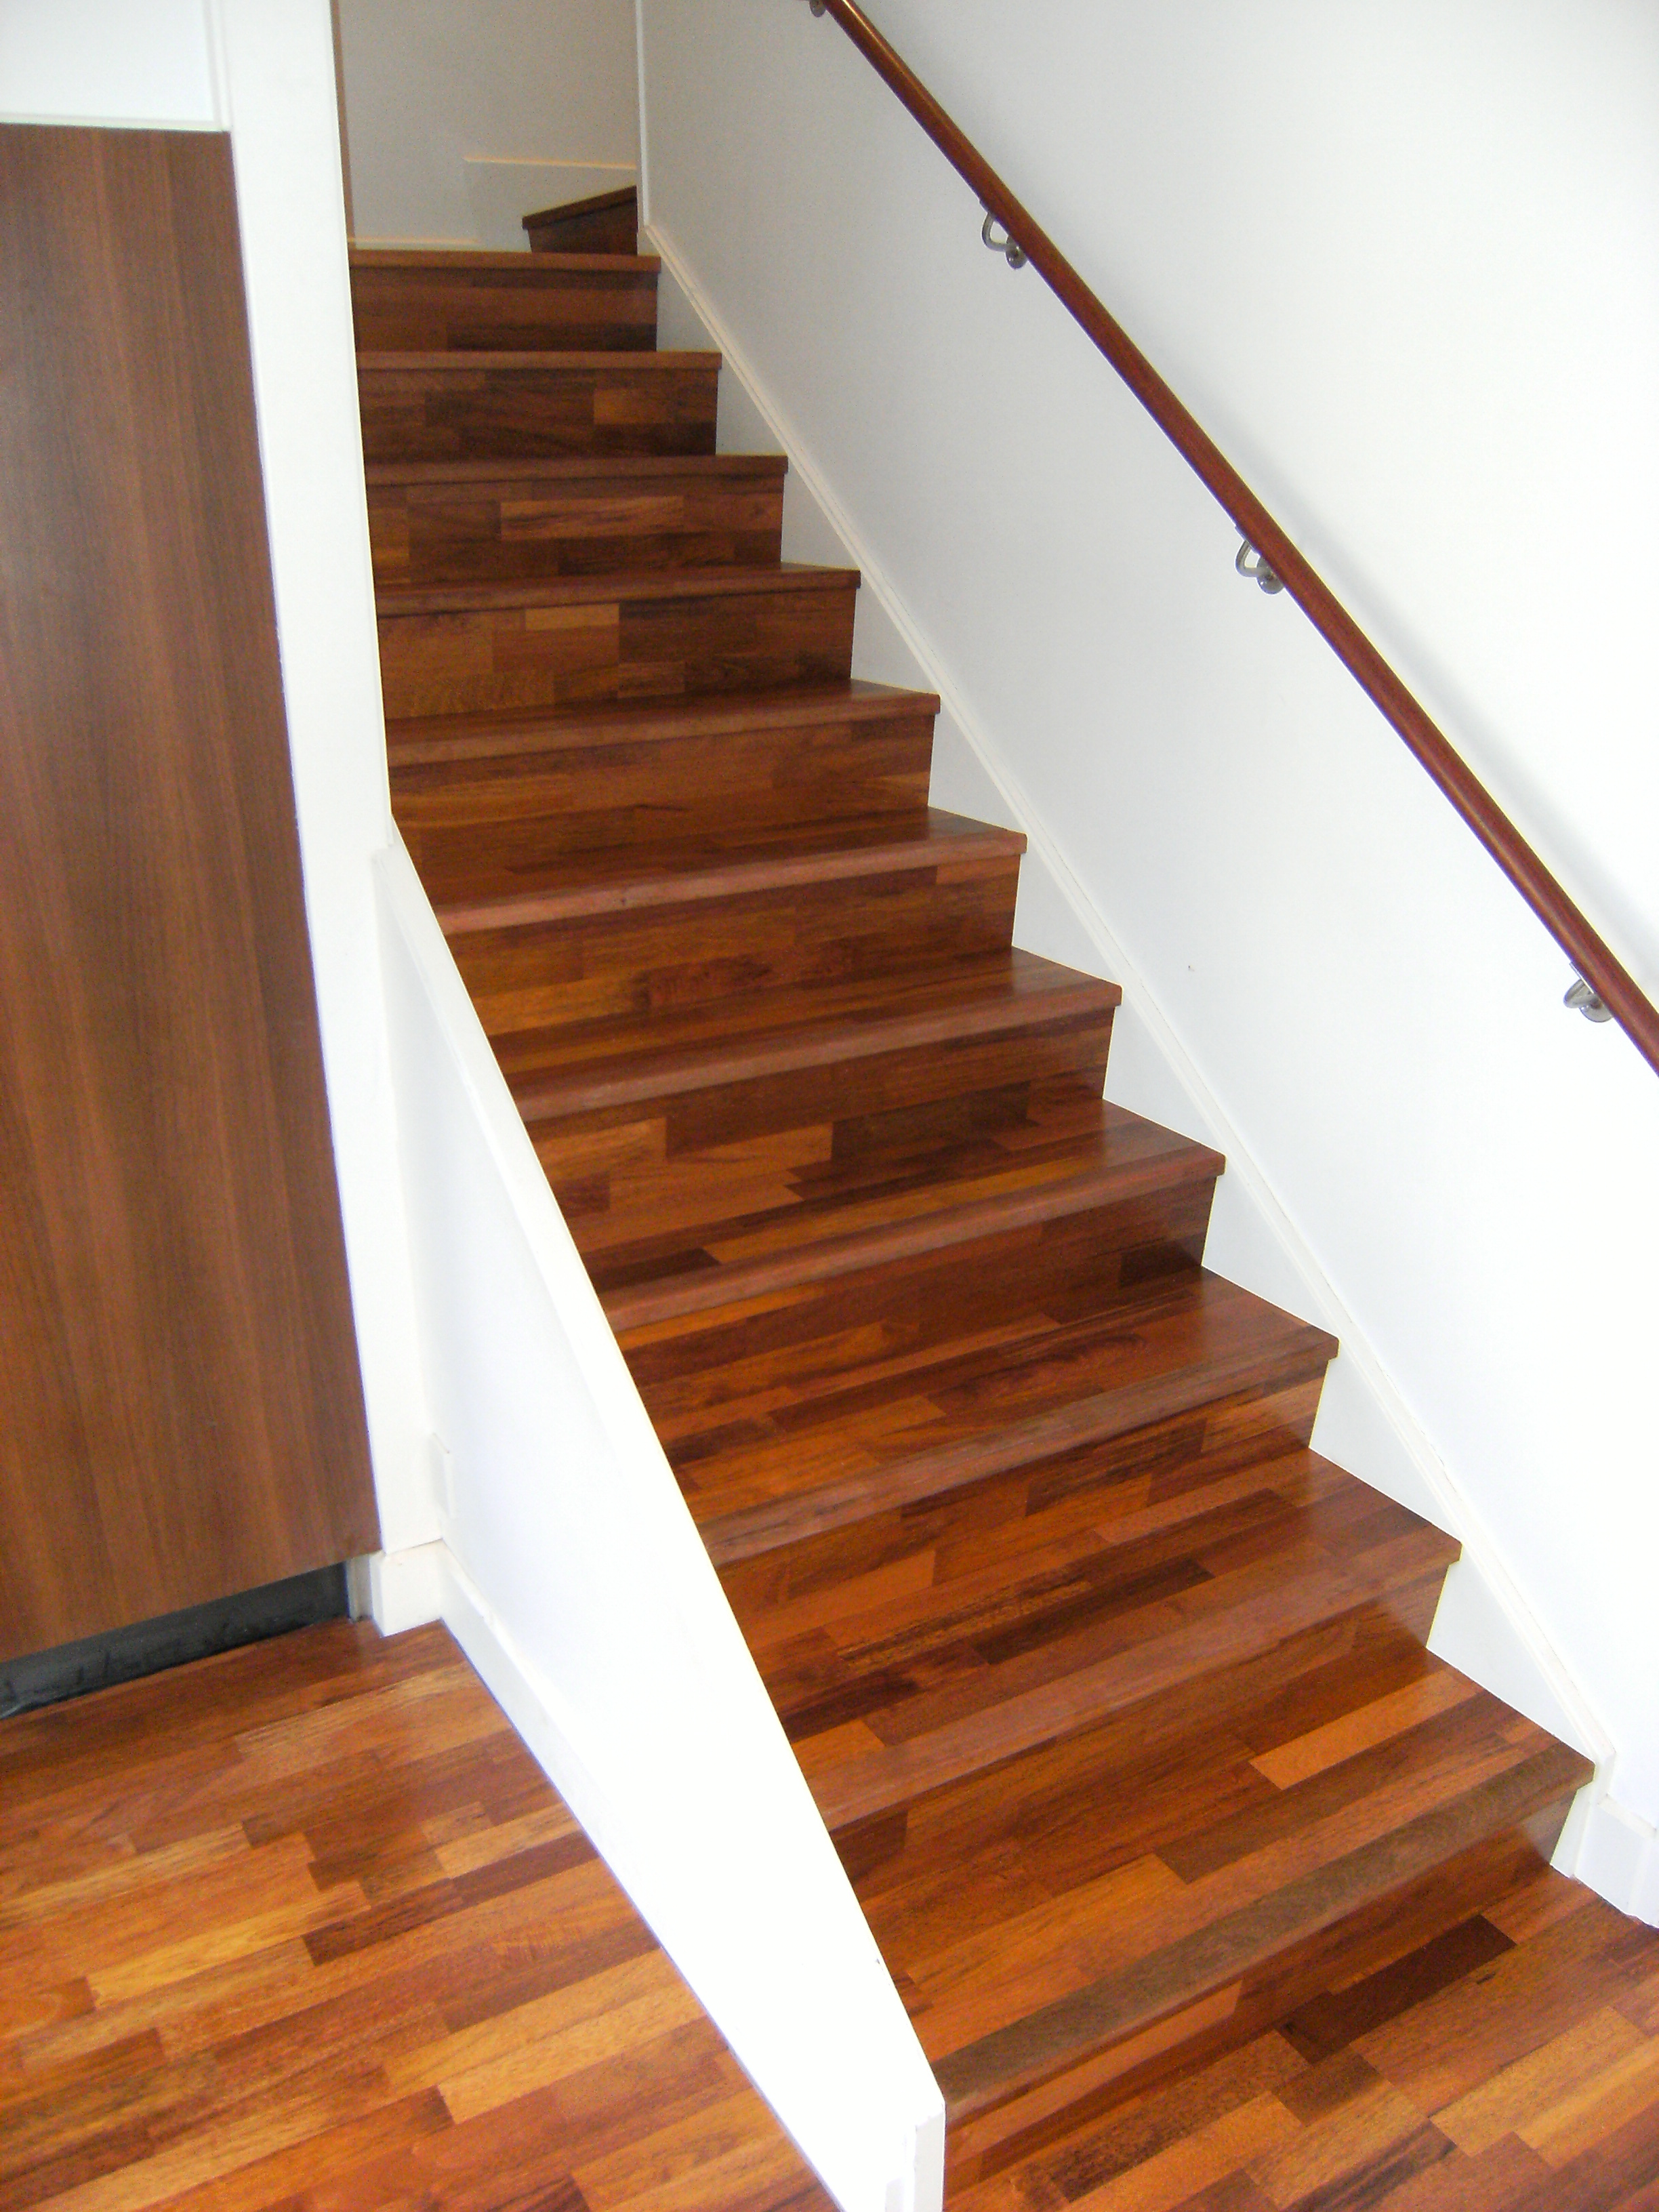 Karelia Merbau 3 Strip Quality Timber Floors For